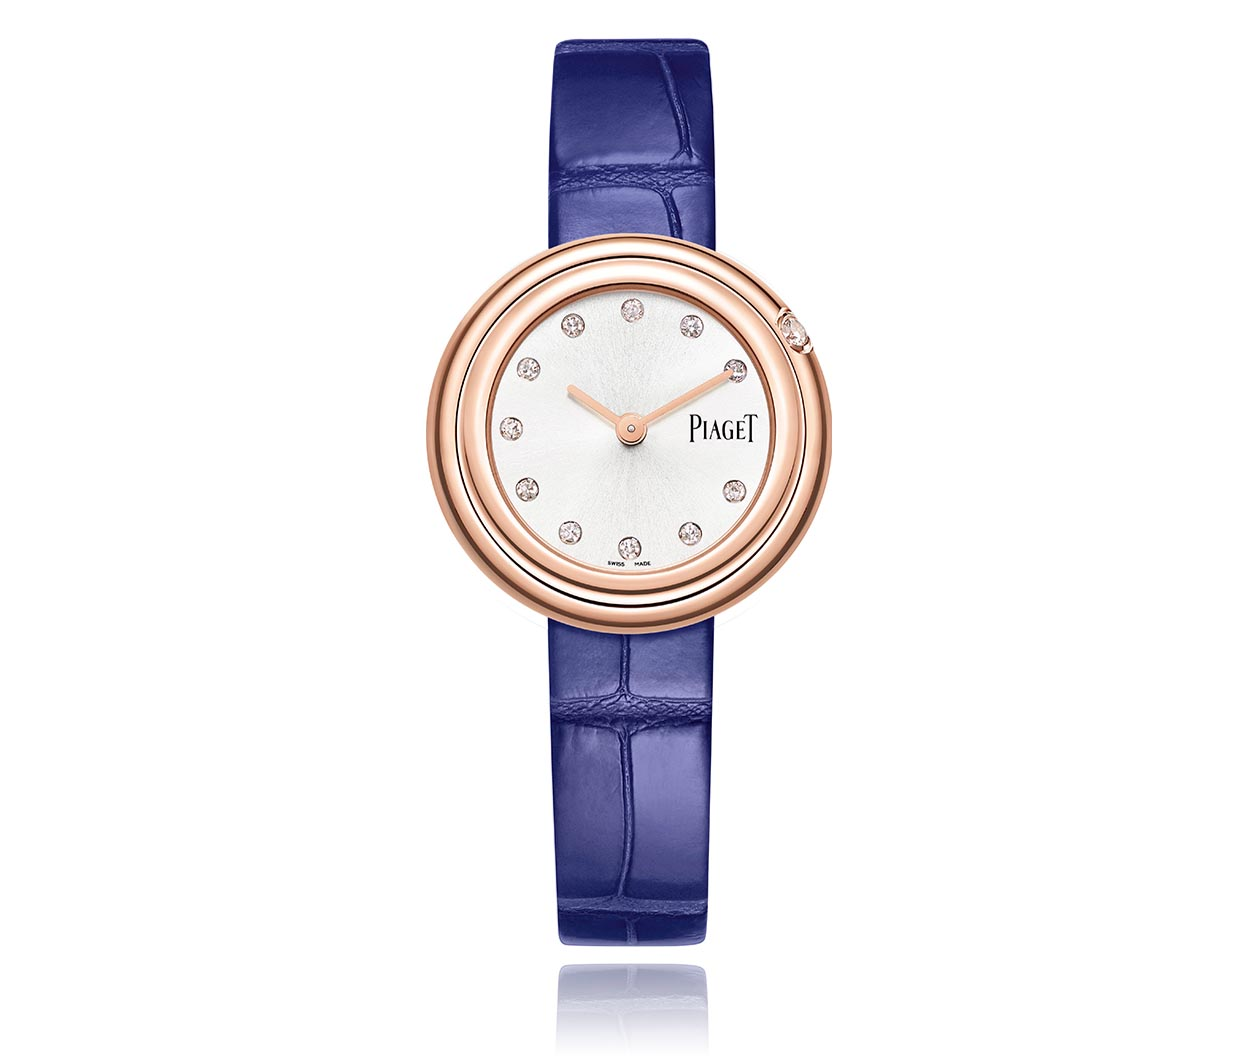 Piaget Possession watch G0A43081 Carousel 1 FINAL